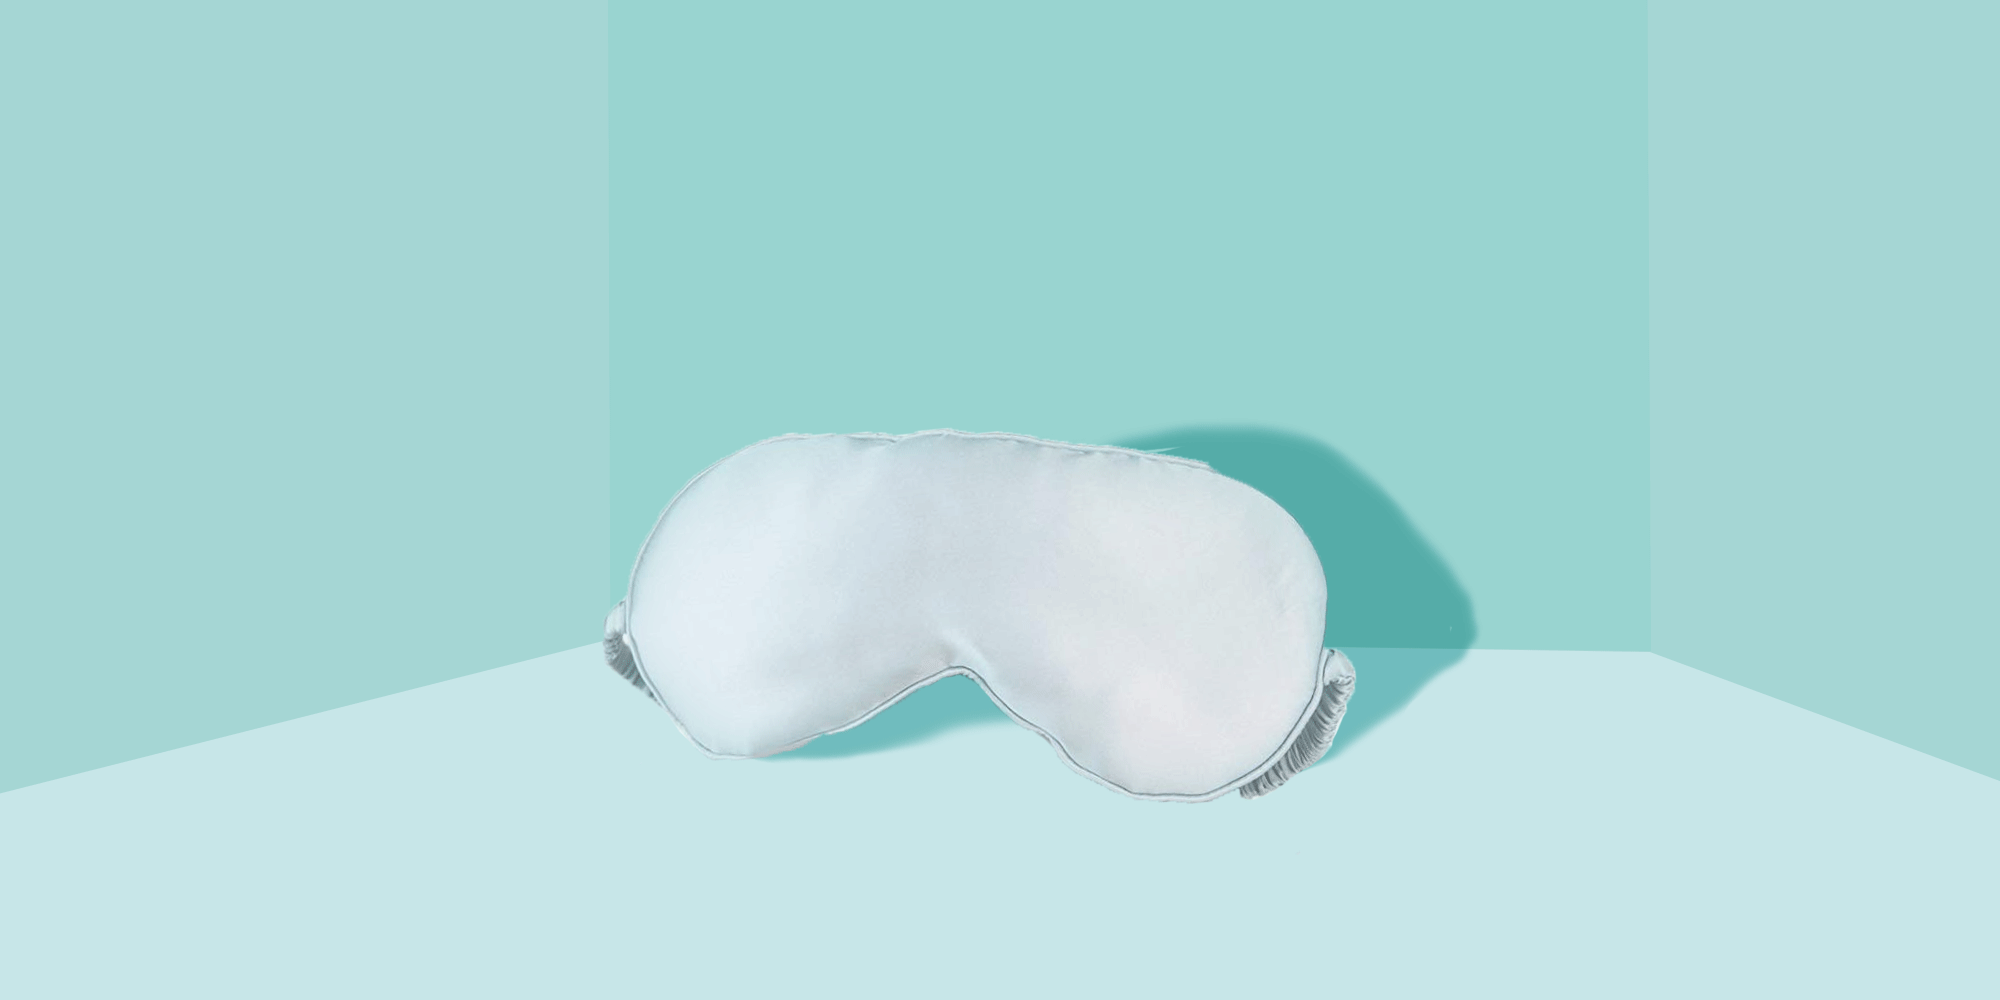 This $20 Sleep Mask Helped Me Get the Best Sleep of My Life